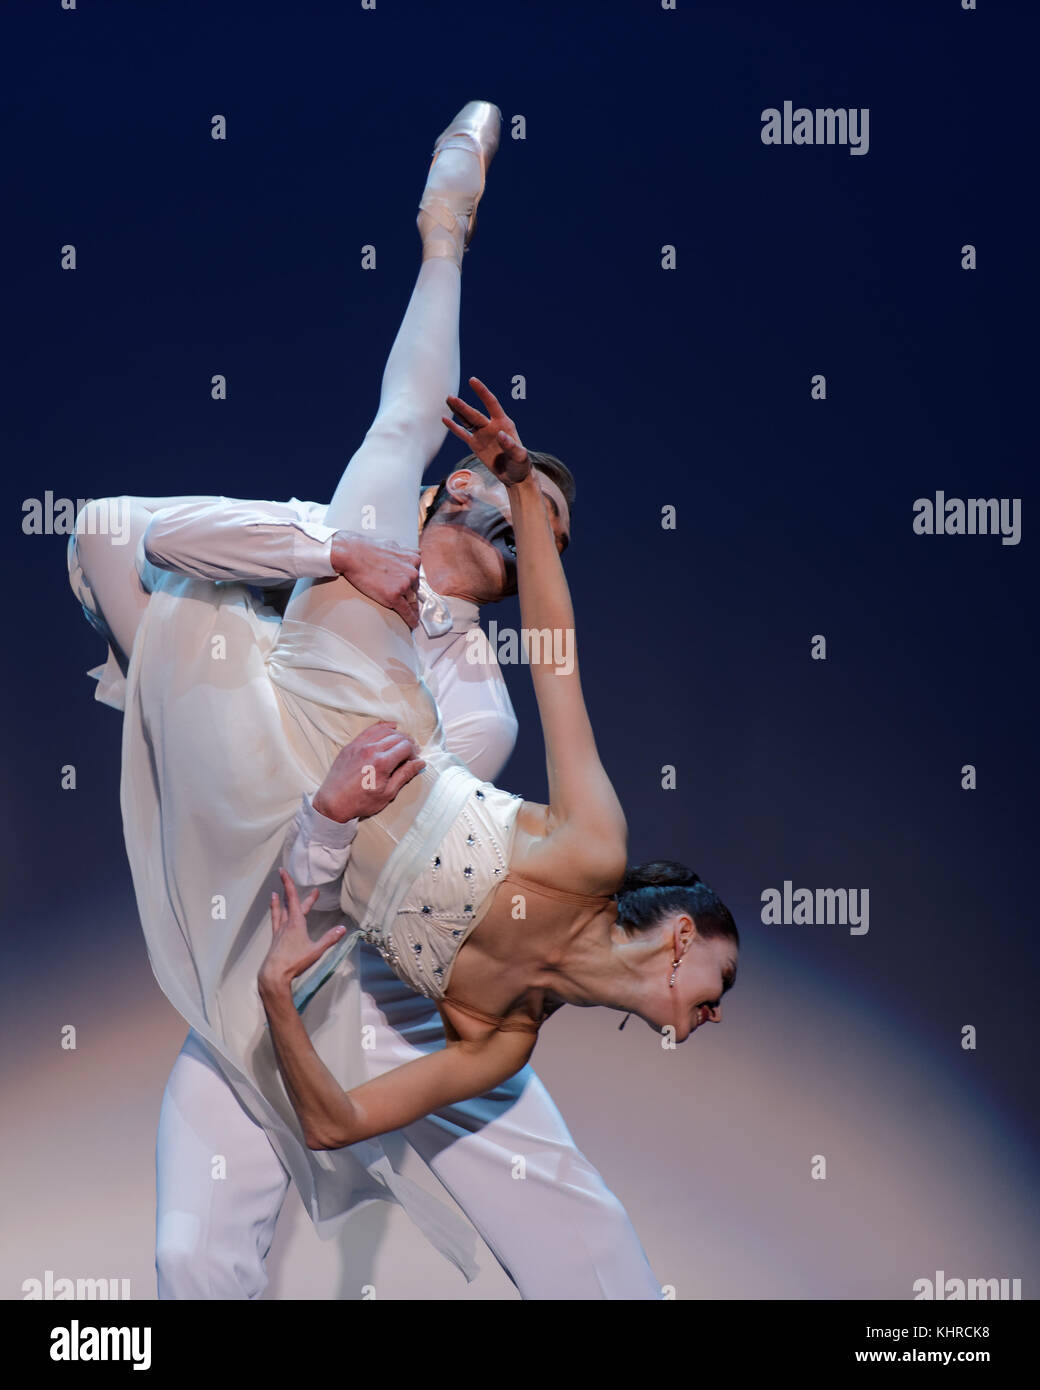 St. Petersburg, Russia - November 16, 2017: Ballet soloists of Mariinsky theater Anastasia Matvienko and Igor Kolb - Stock Image